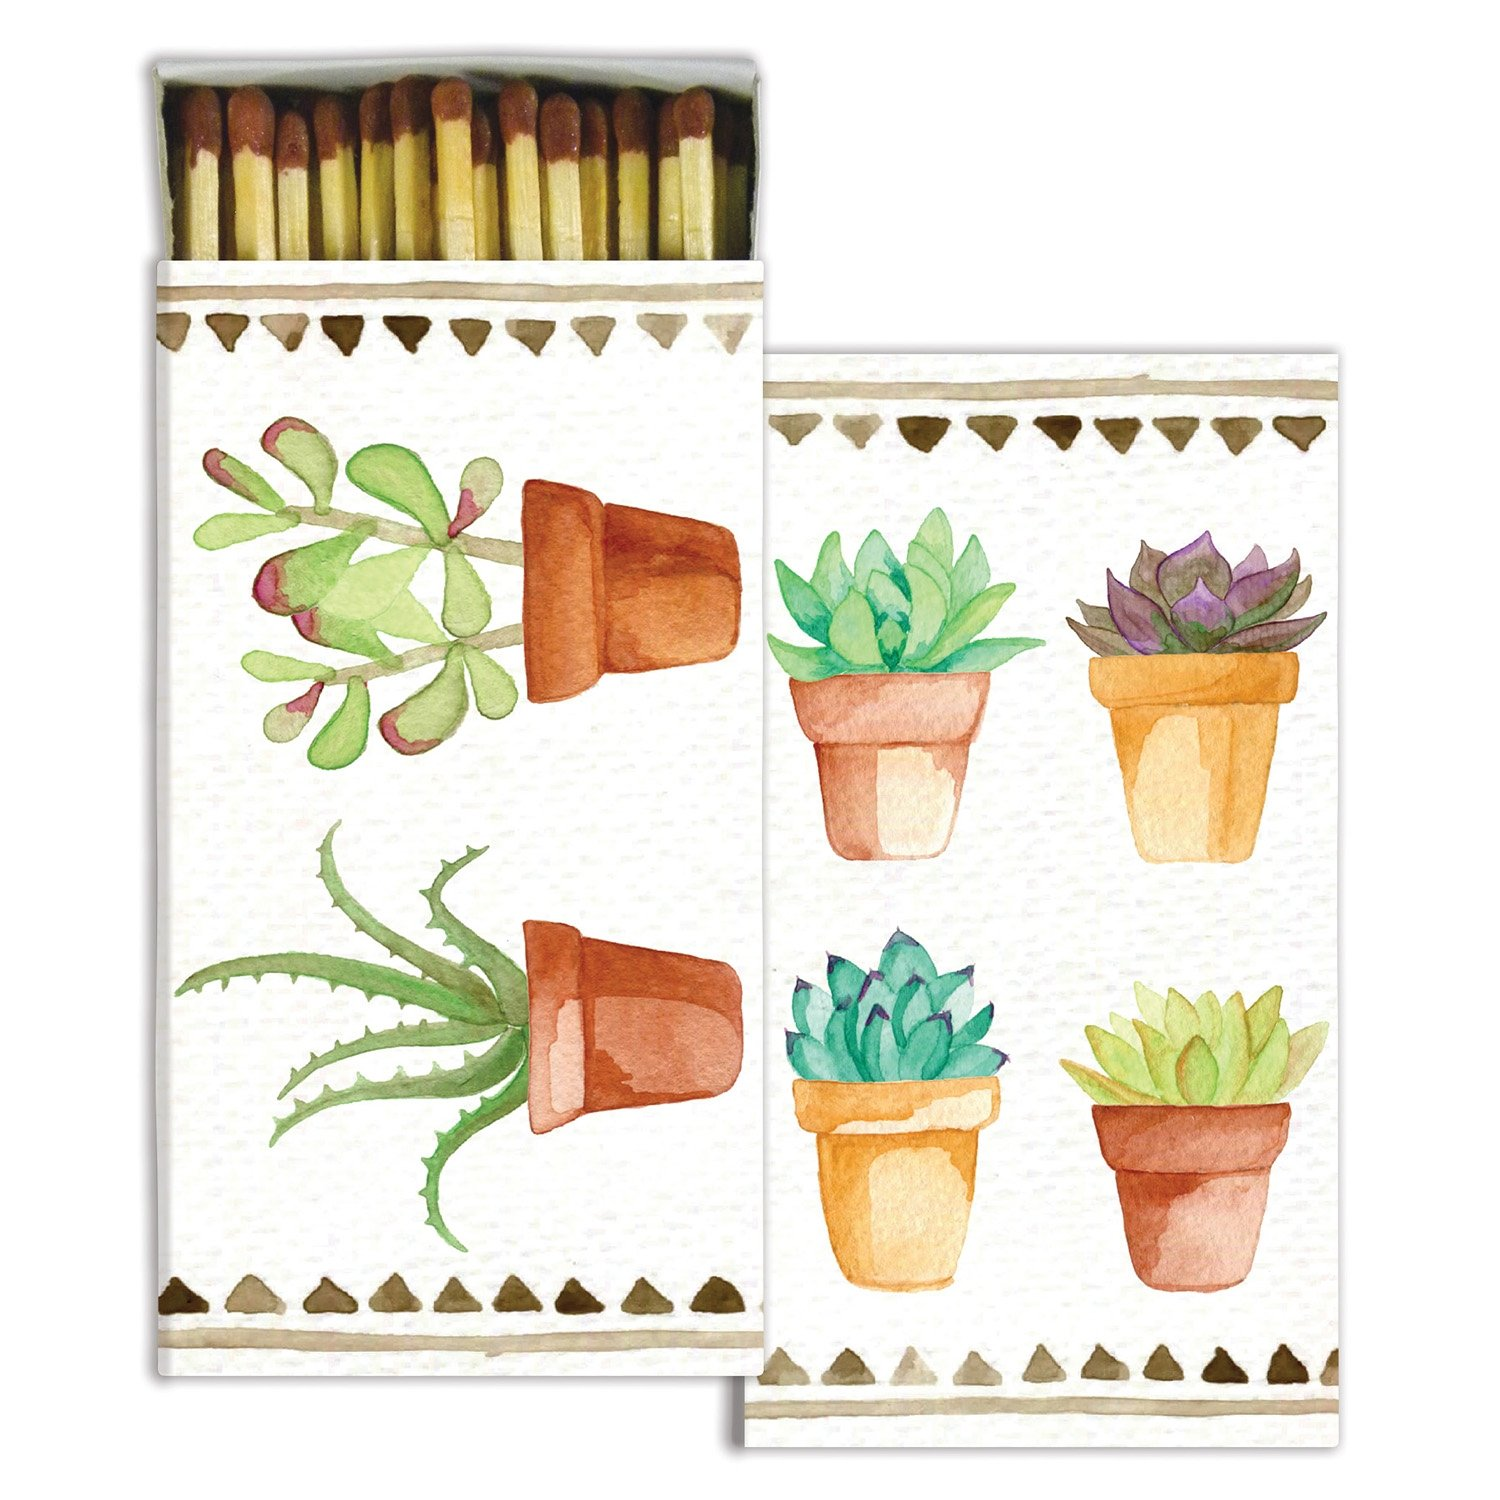 Watercolor Succulents Match Boxes with Wooden Matches (Set of 6)